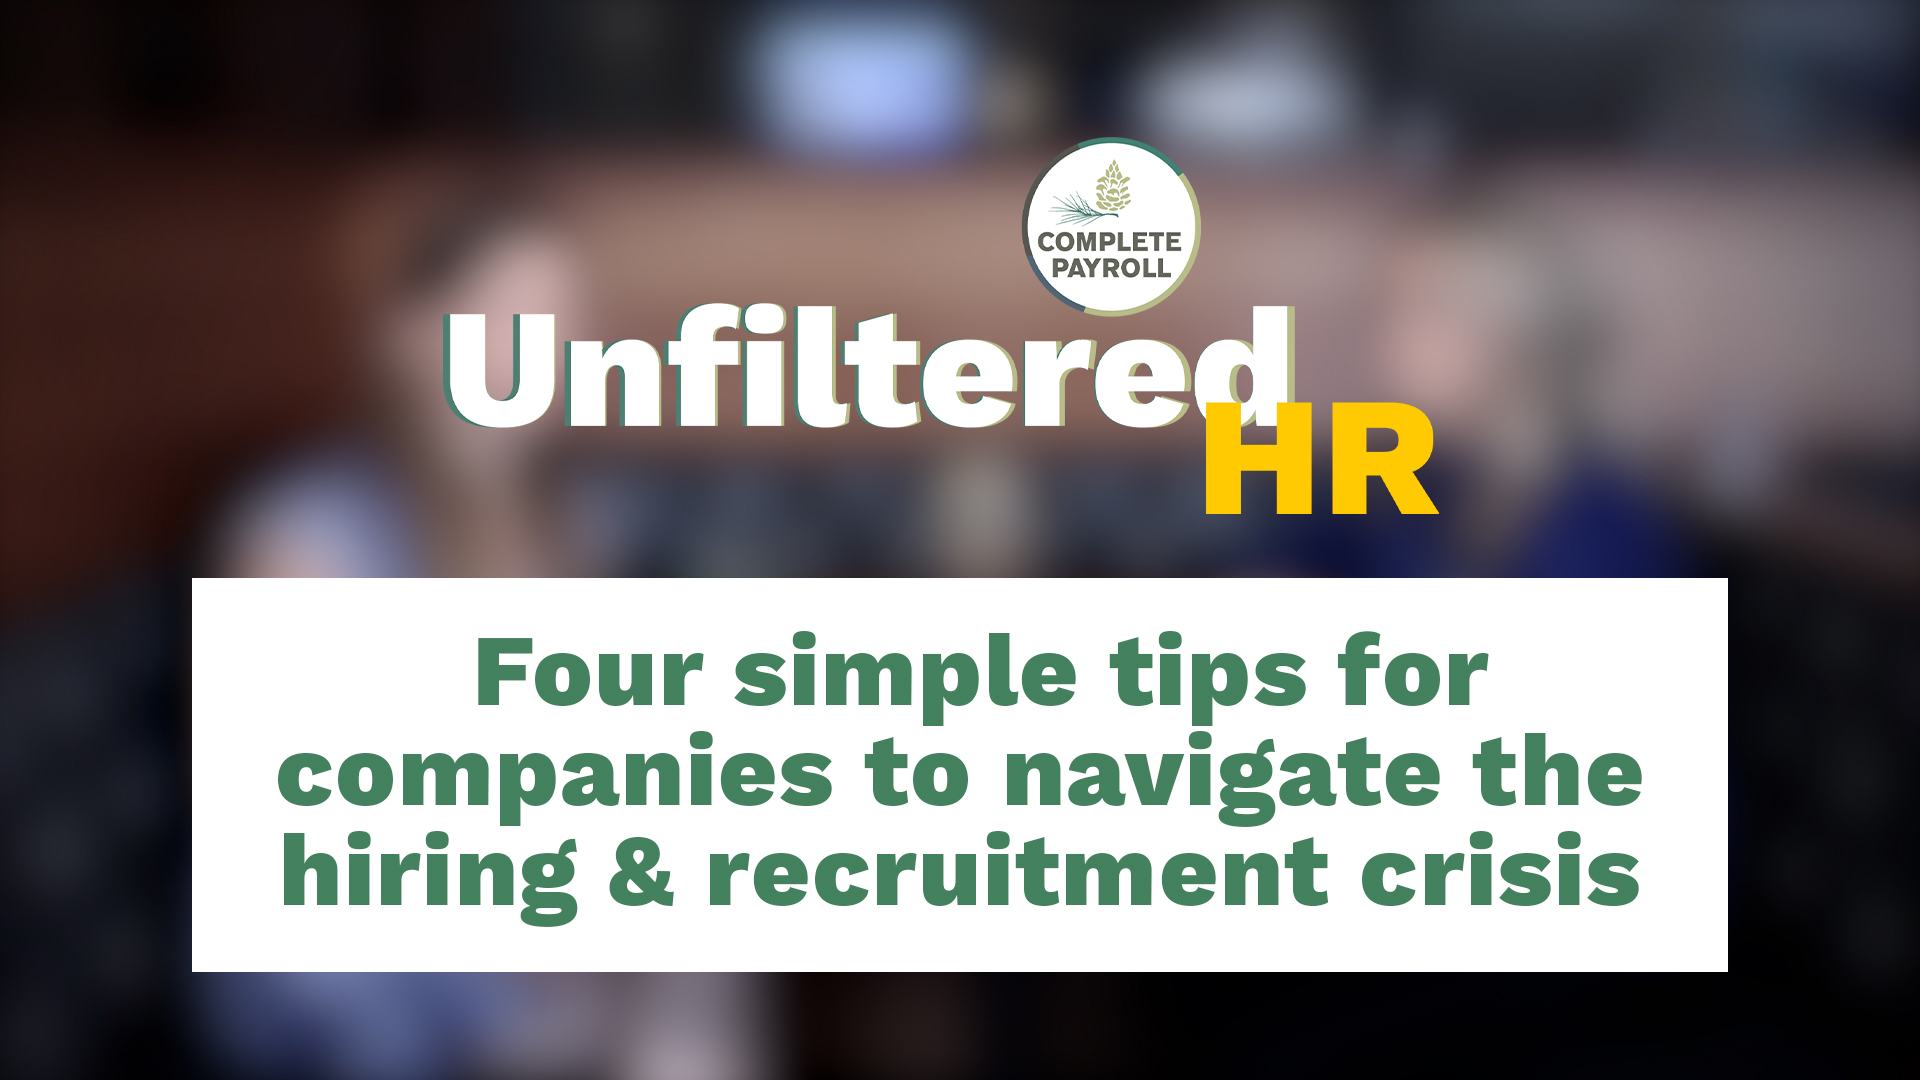 Four Simple Tips for Navigating the Hiring & Recruitment Crisis | Unfiltered HR